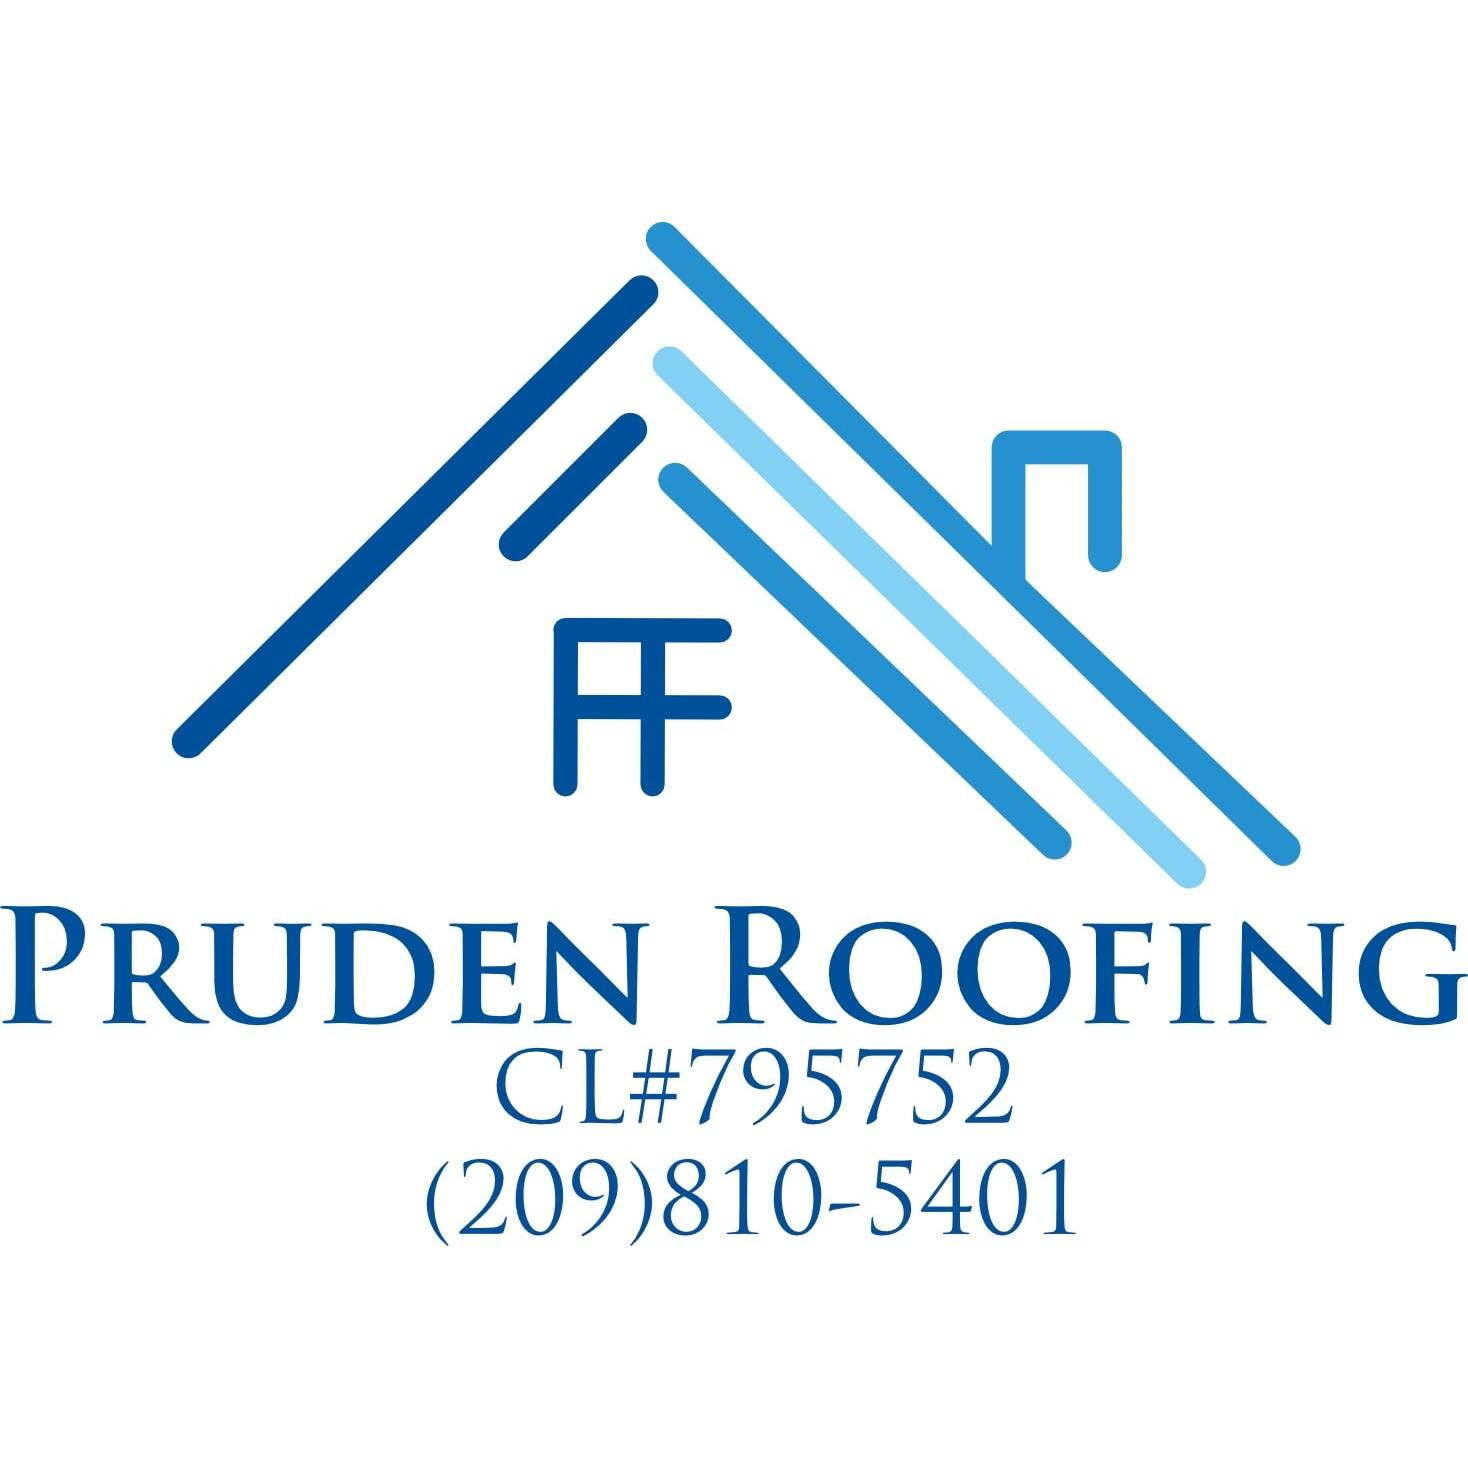 Pruden Roofing image 0